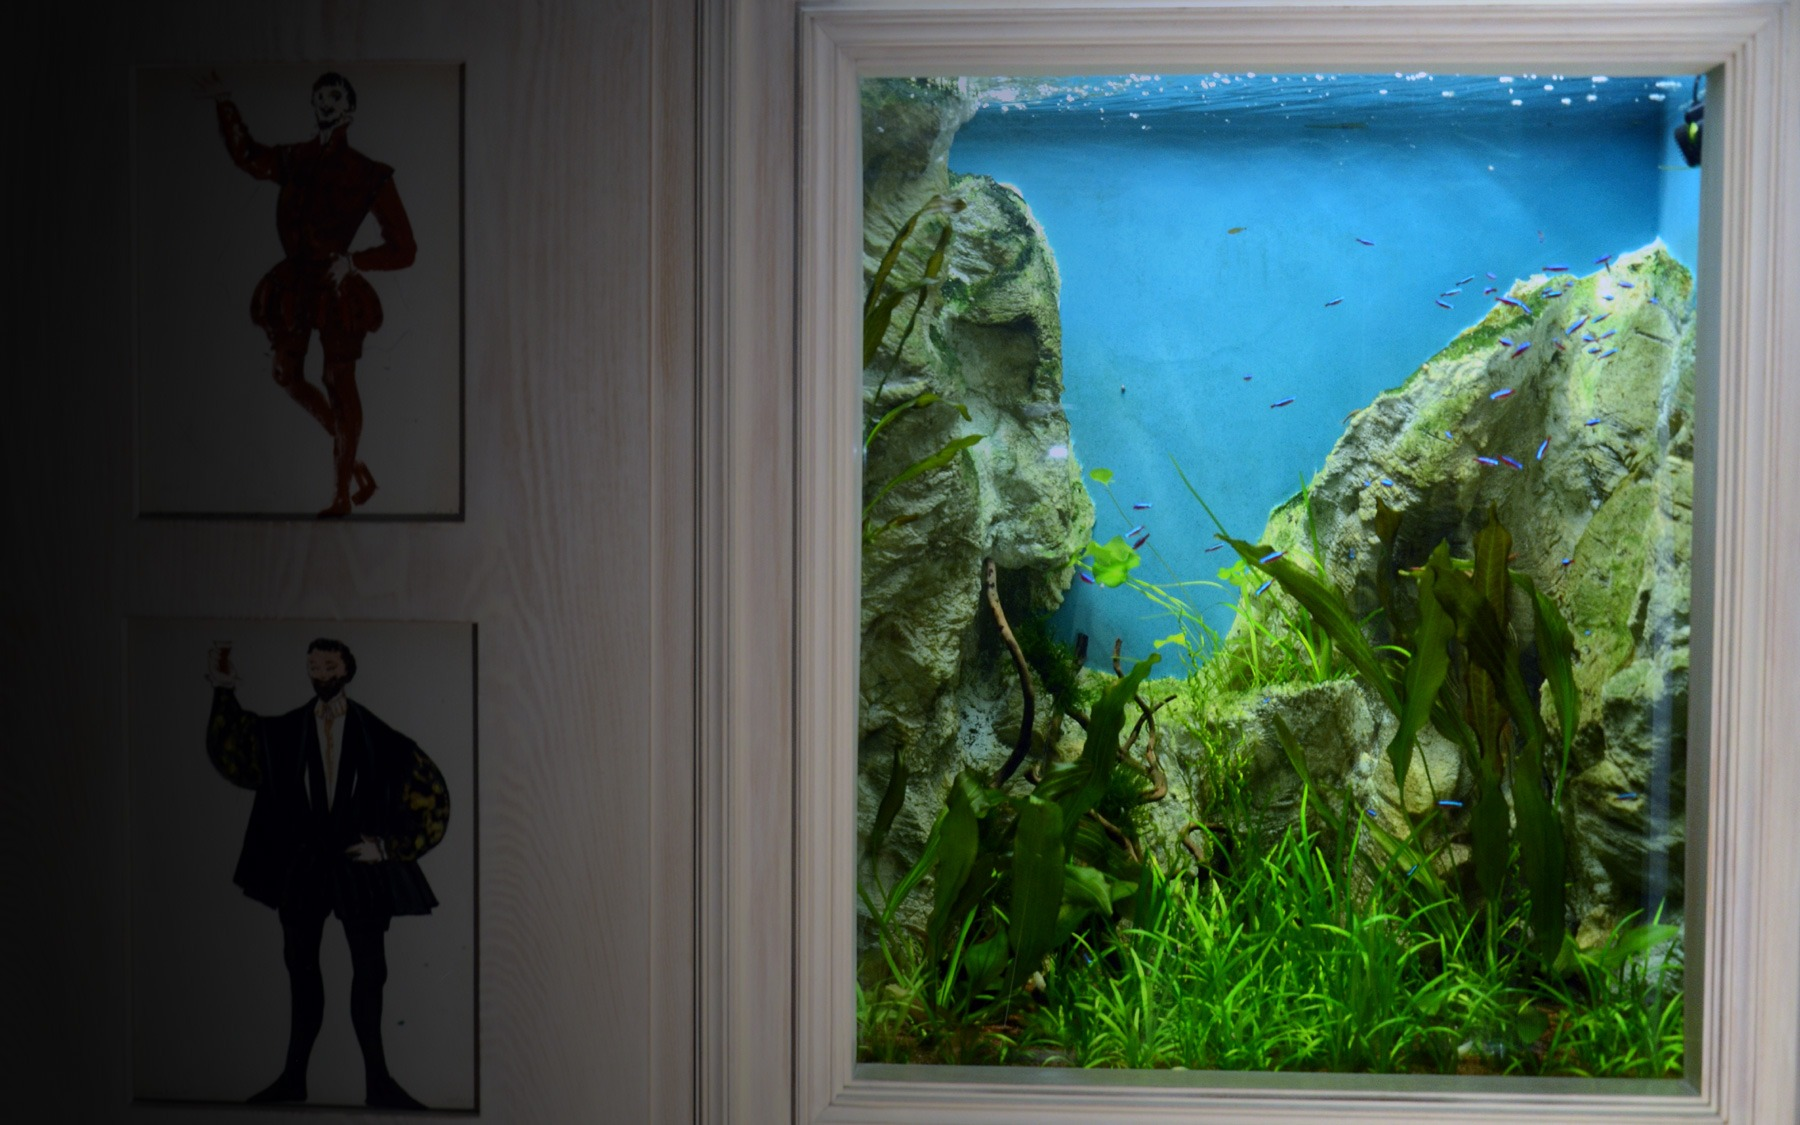 Aquarium sur mesure encastr oc an d 39 interieur for Aquarium interieur